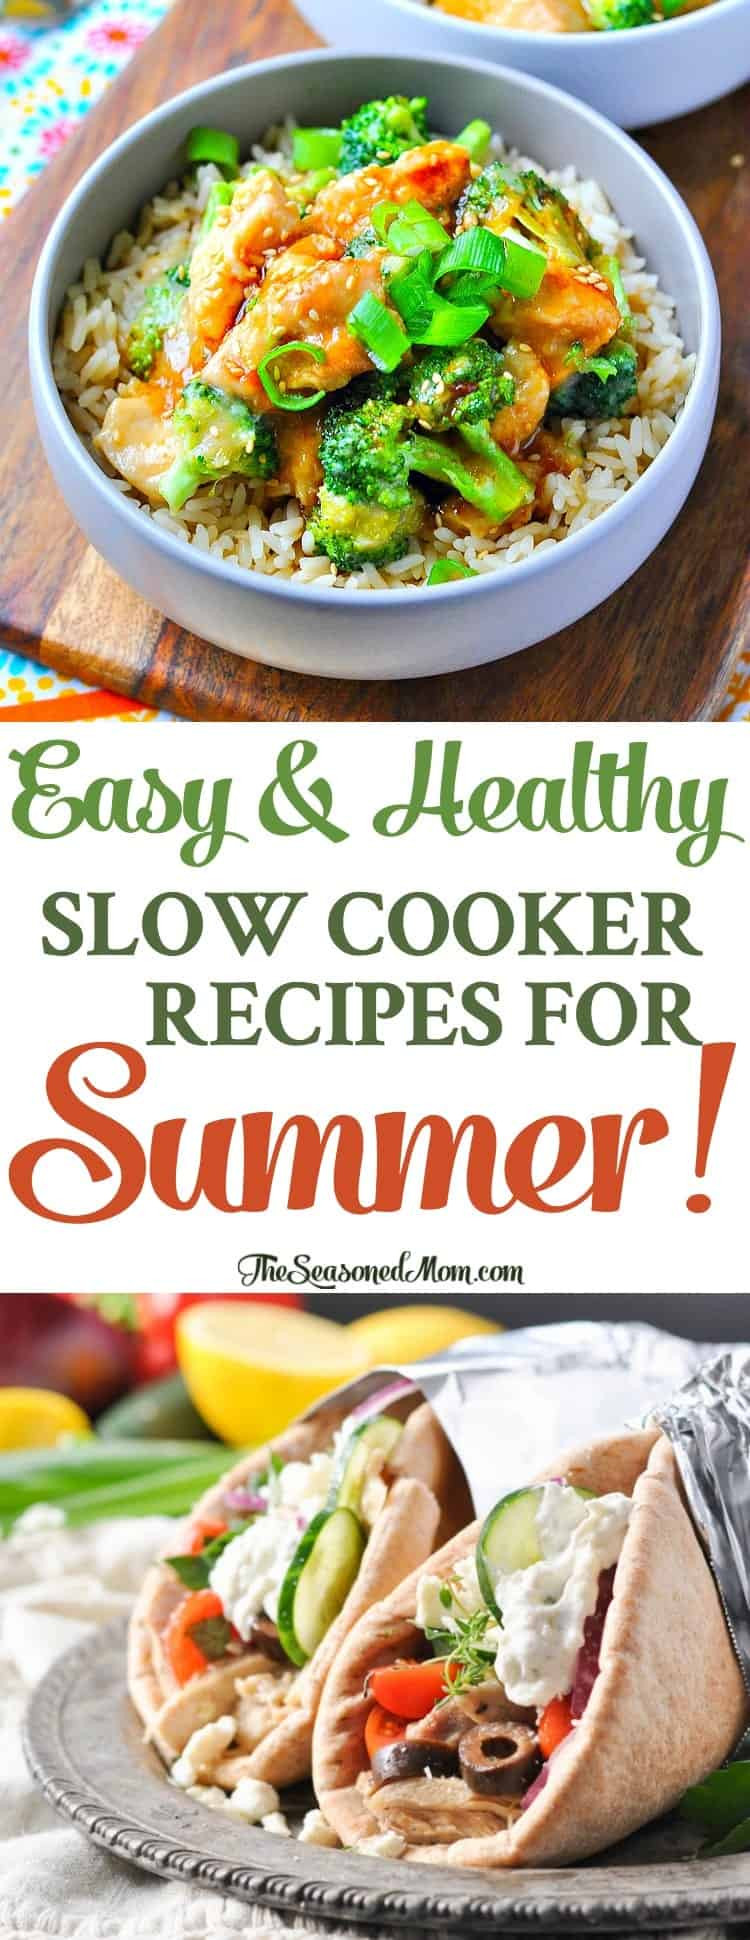 Healthy Slow Cooker Dinner Recipes  Easy Healthy Slow Cooker Recipes for Summer The